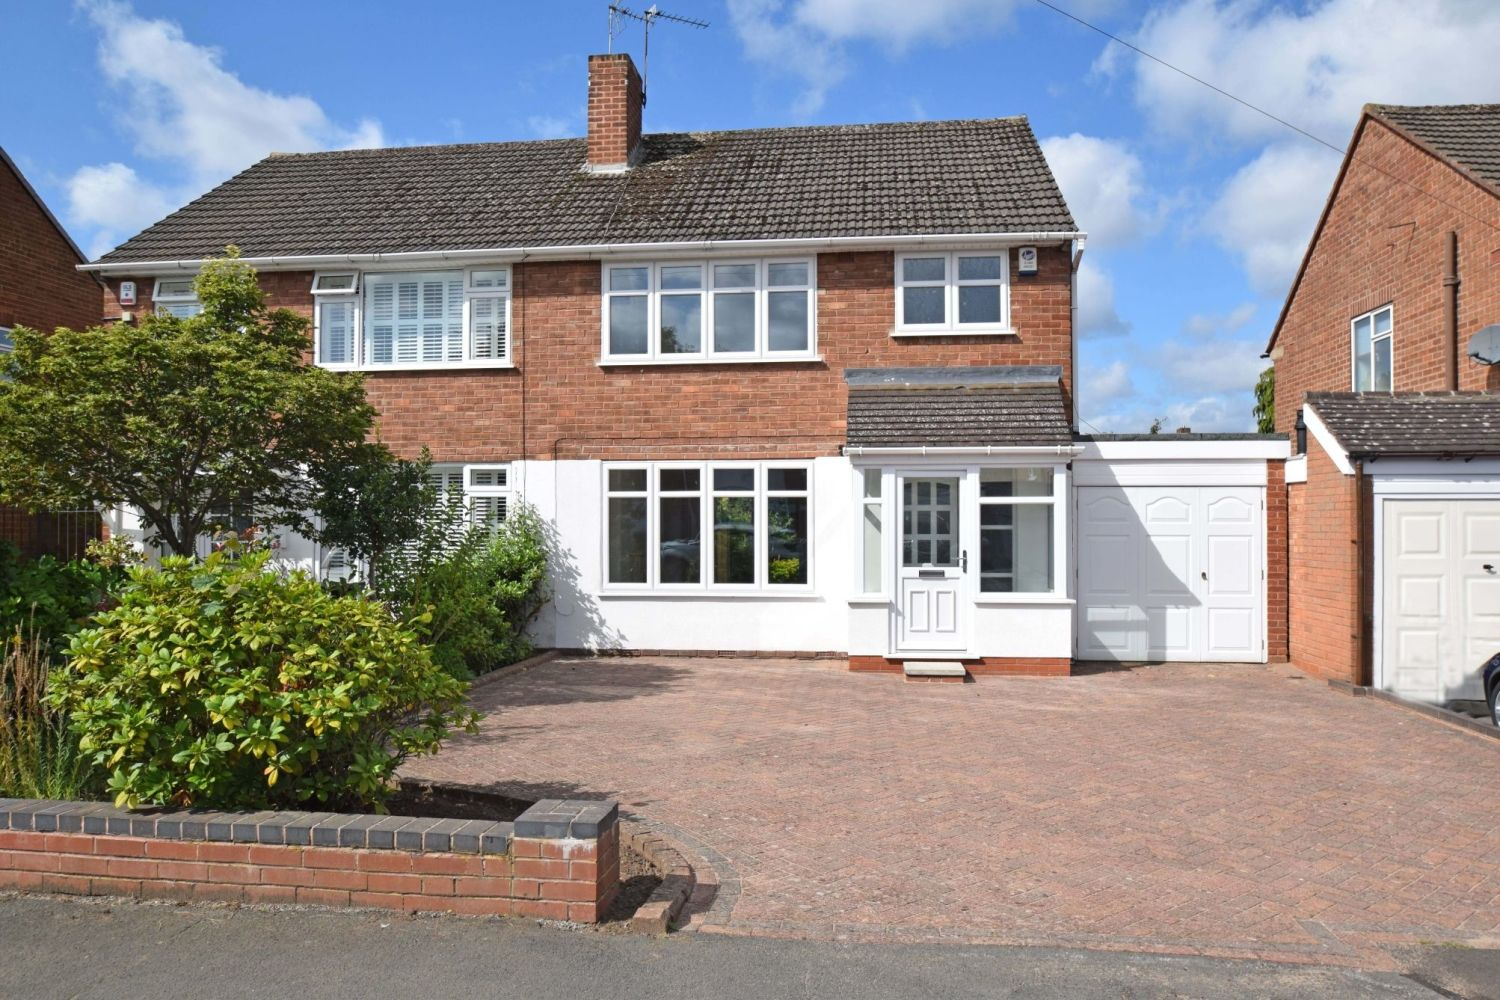 3 bed semi-detached for sale in Beachcroft Road, Wall Heath  - Property Image 1